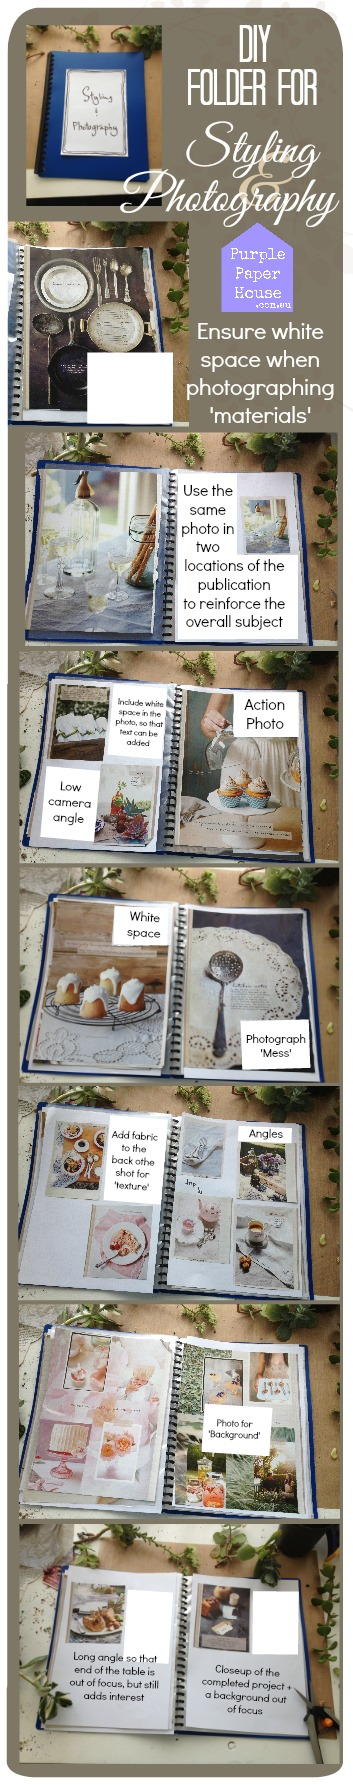 DIY Tute - Folder for Styling & photography